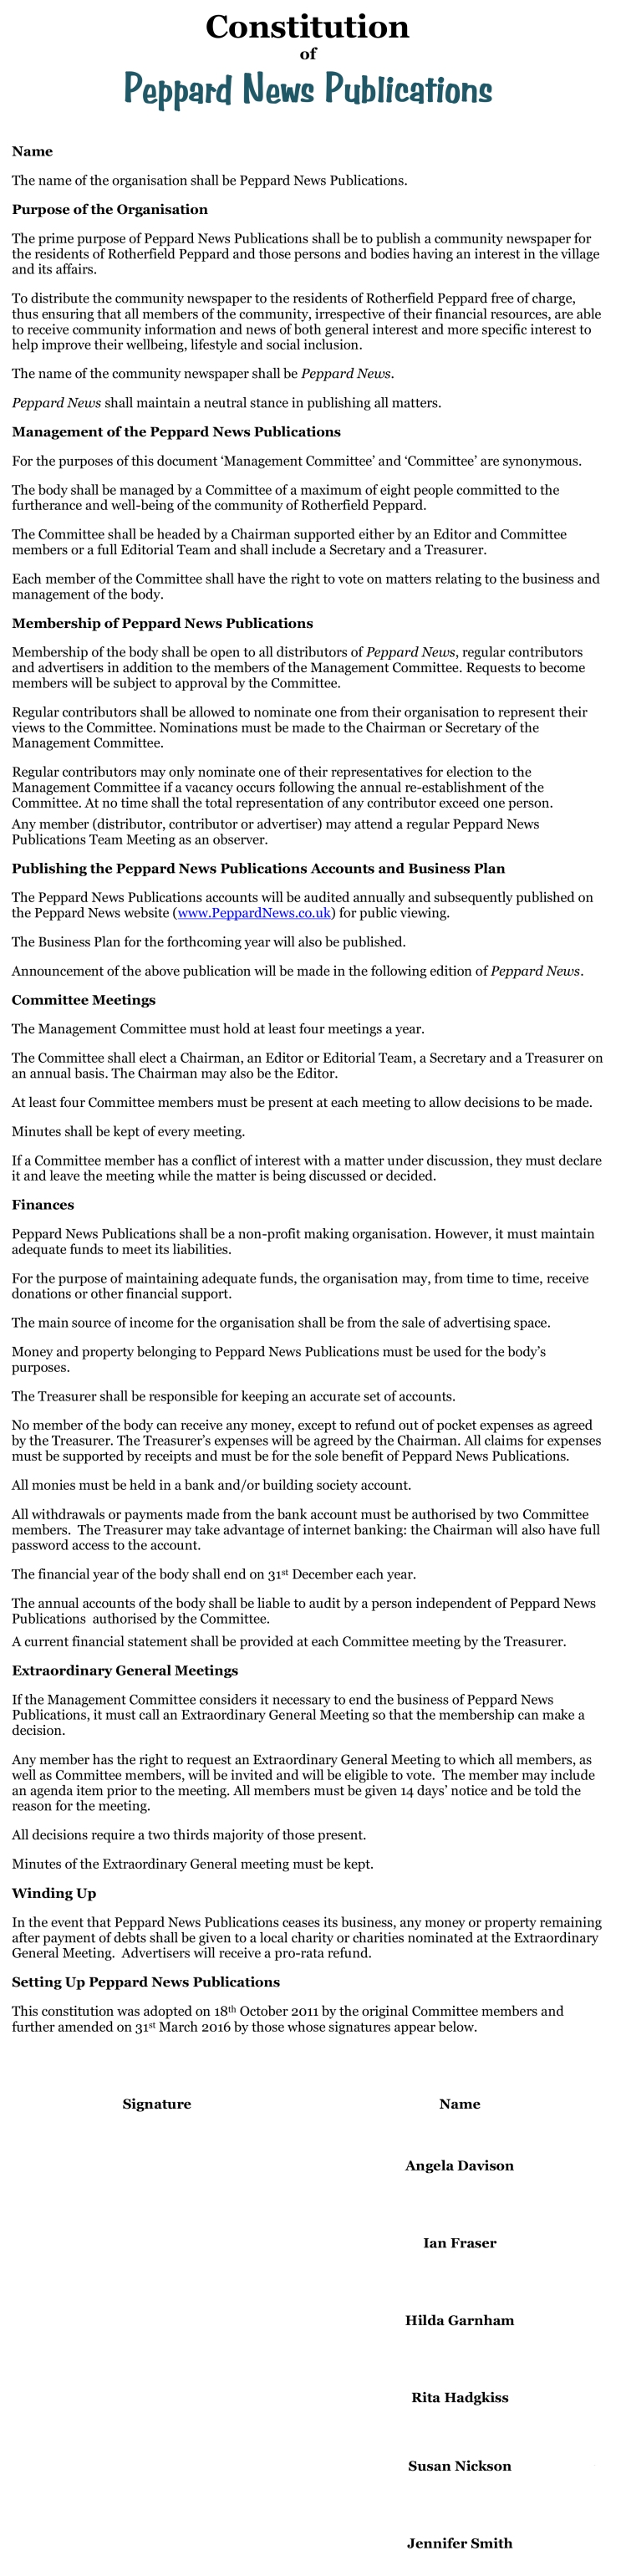 constitution-of-peppard-news-publications-vmod-for-web